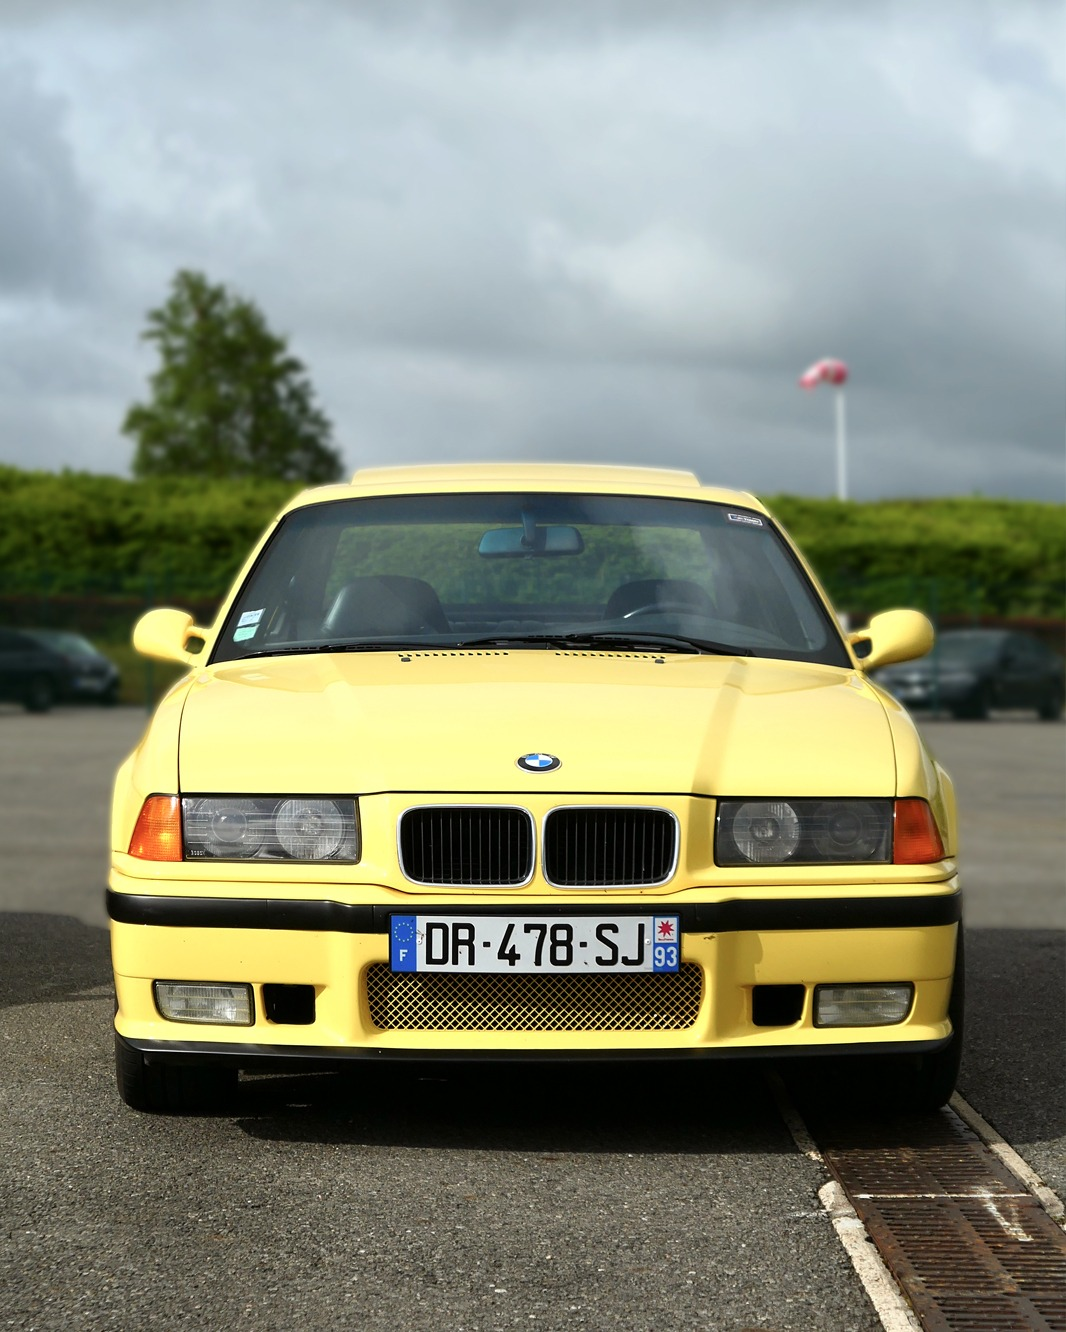 bmw m town m3 e36 road rug cars roadrugcars brothers car voiture auto automobile